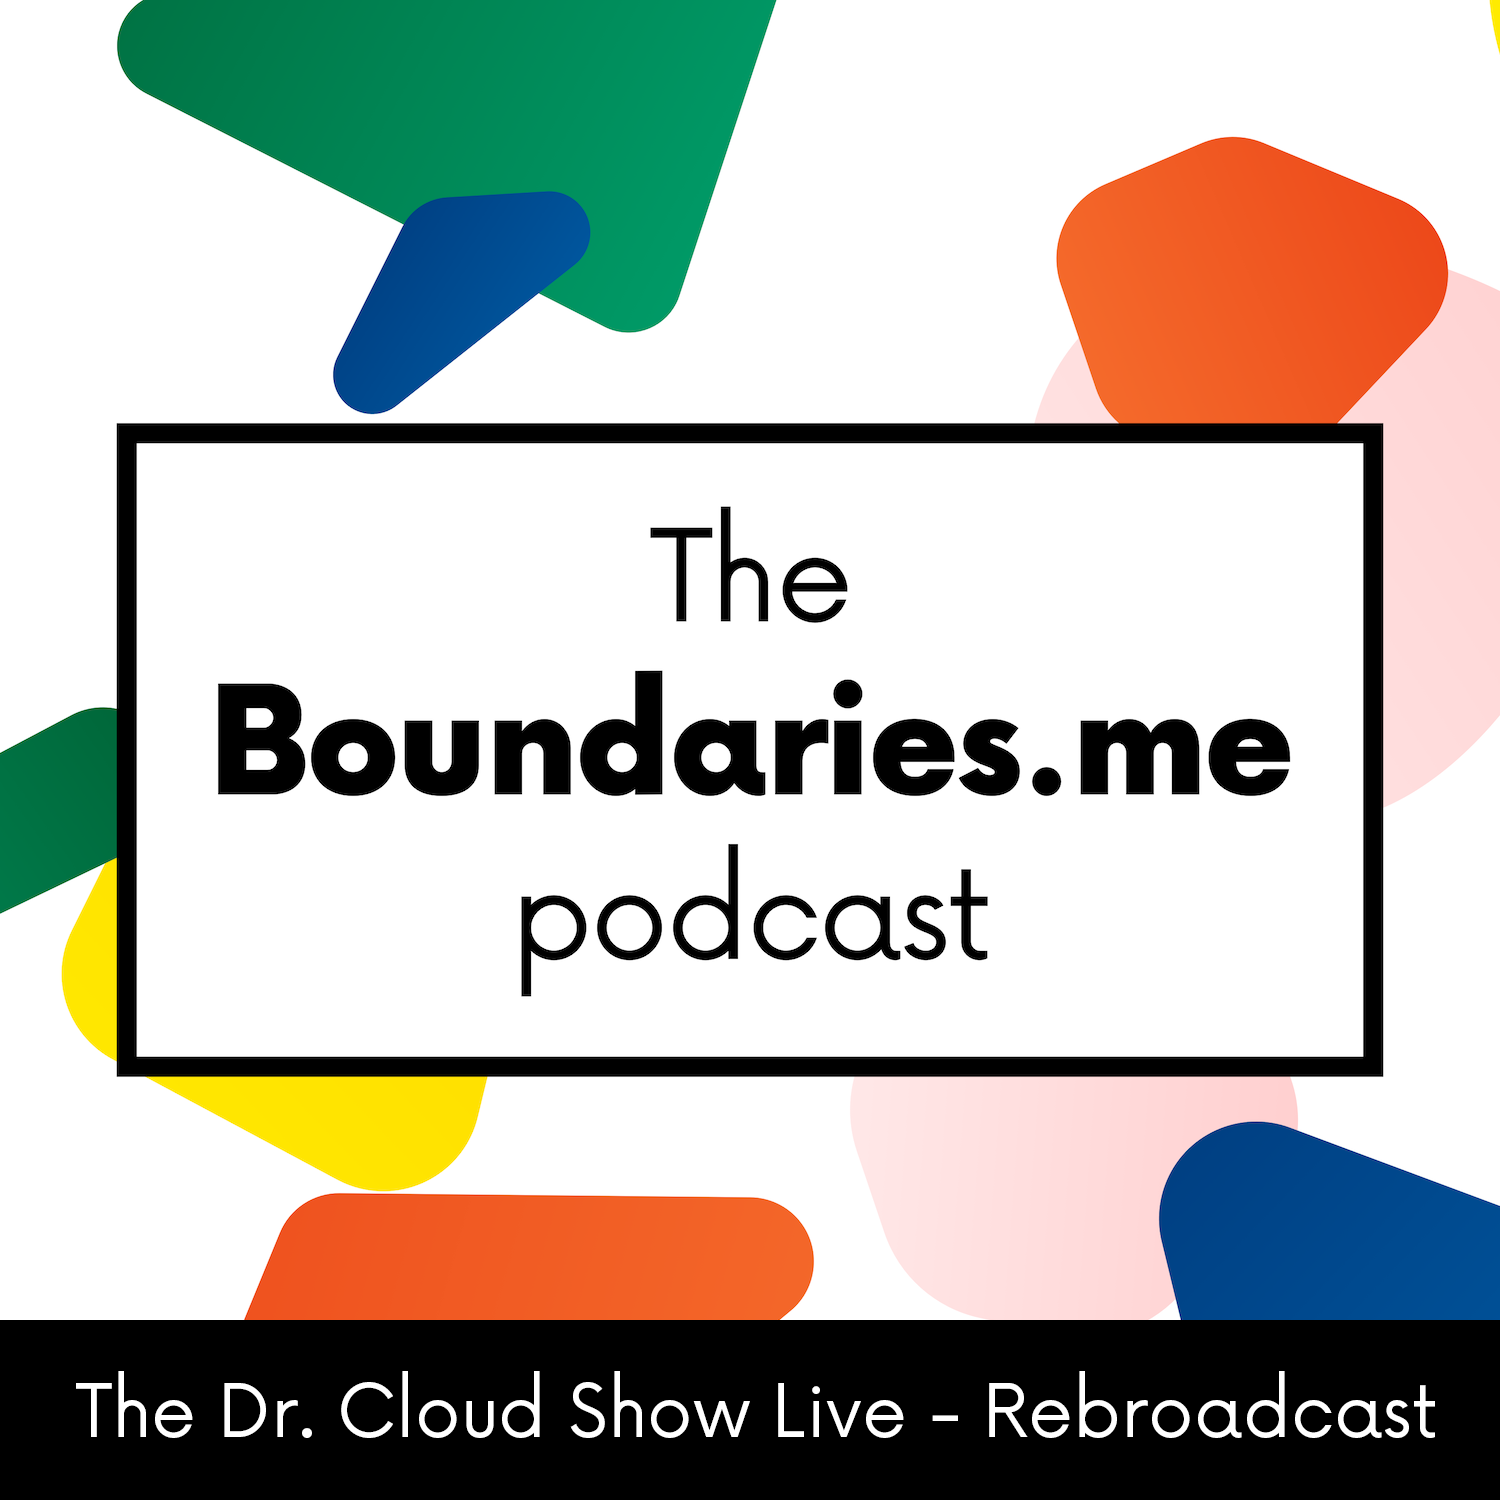 Episode 227 - The Dr. Cloud Show Live - Reliable Relationships - 5-18-2021